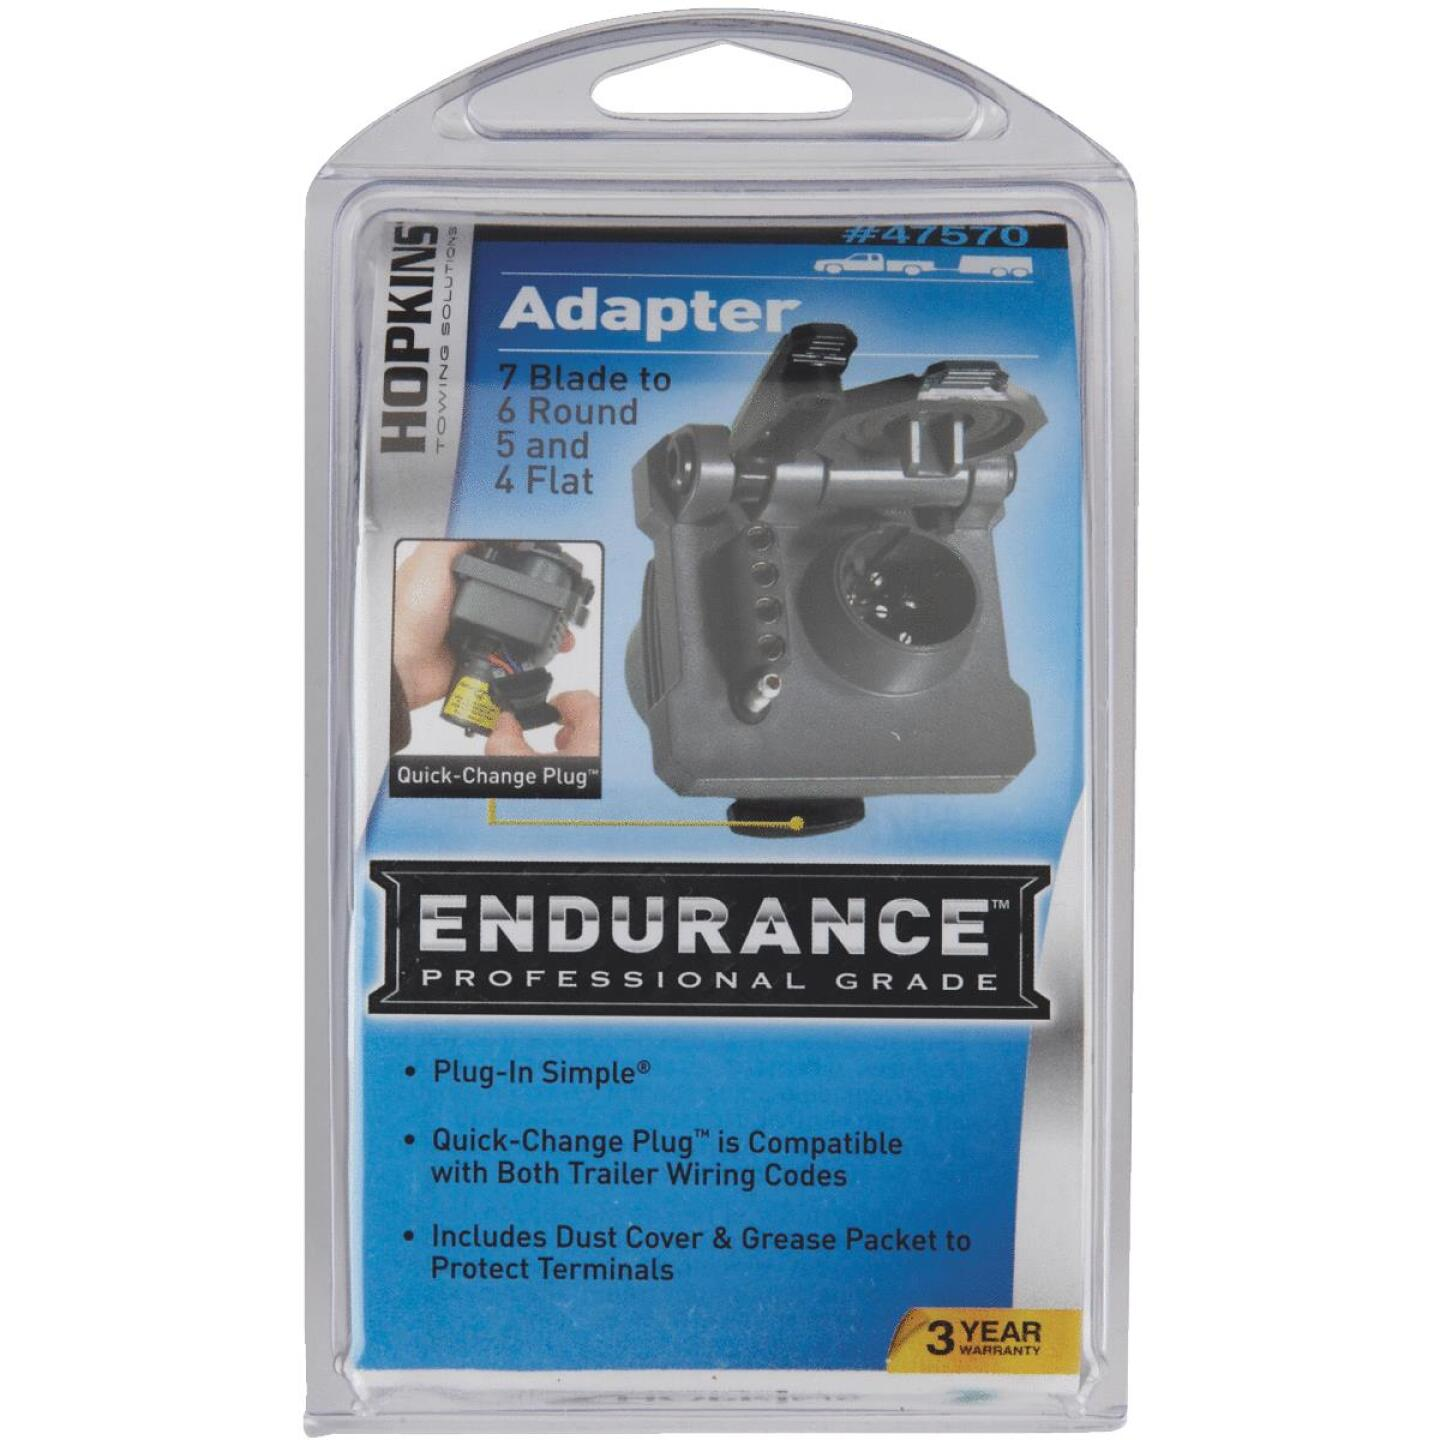 Hopkins Endurance Multi-Tow 7-Blade to 6, 5, & 4-Plug-In Adapter Image 2